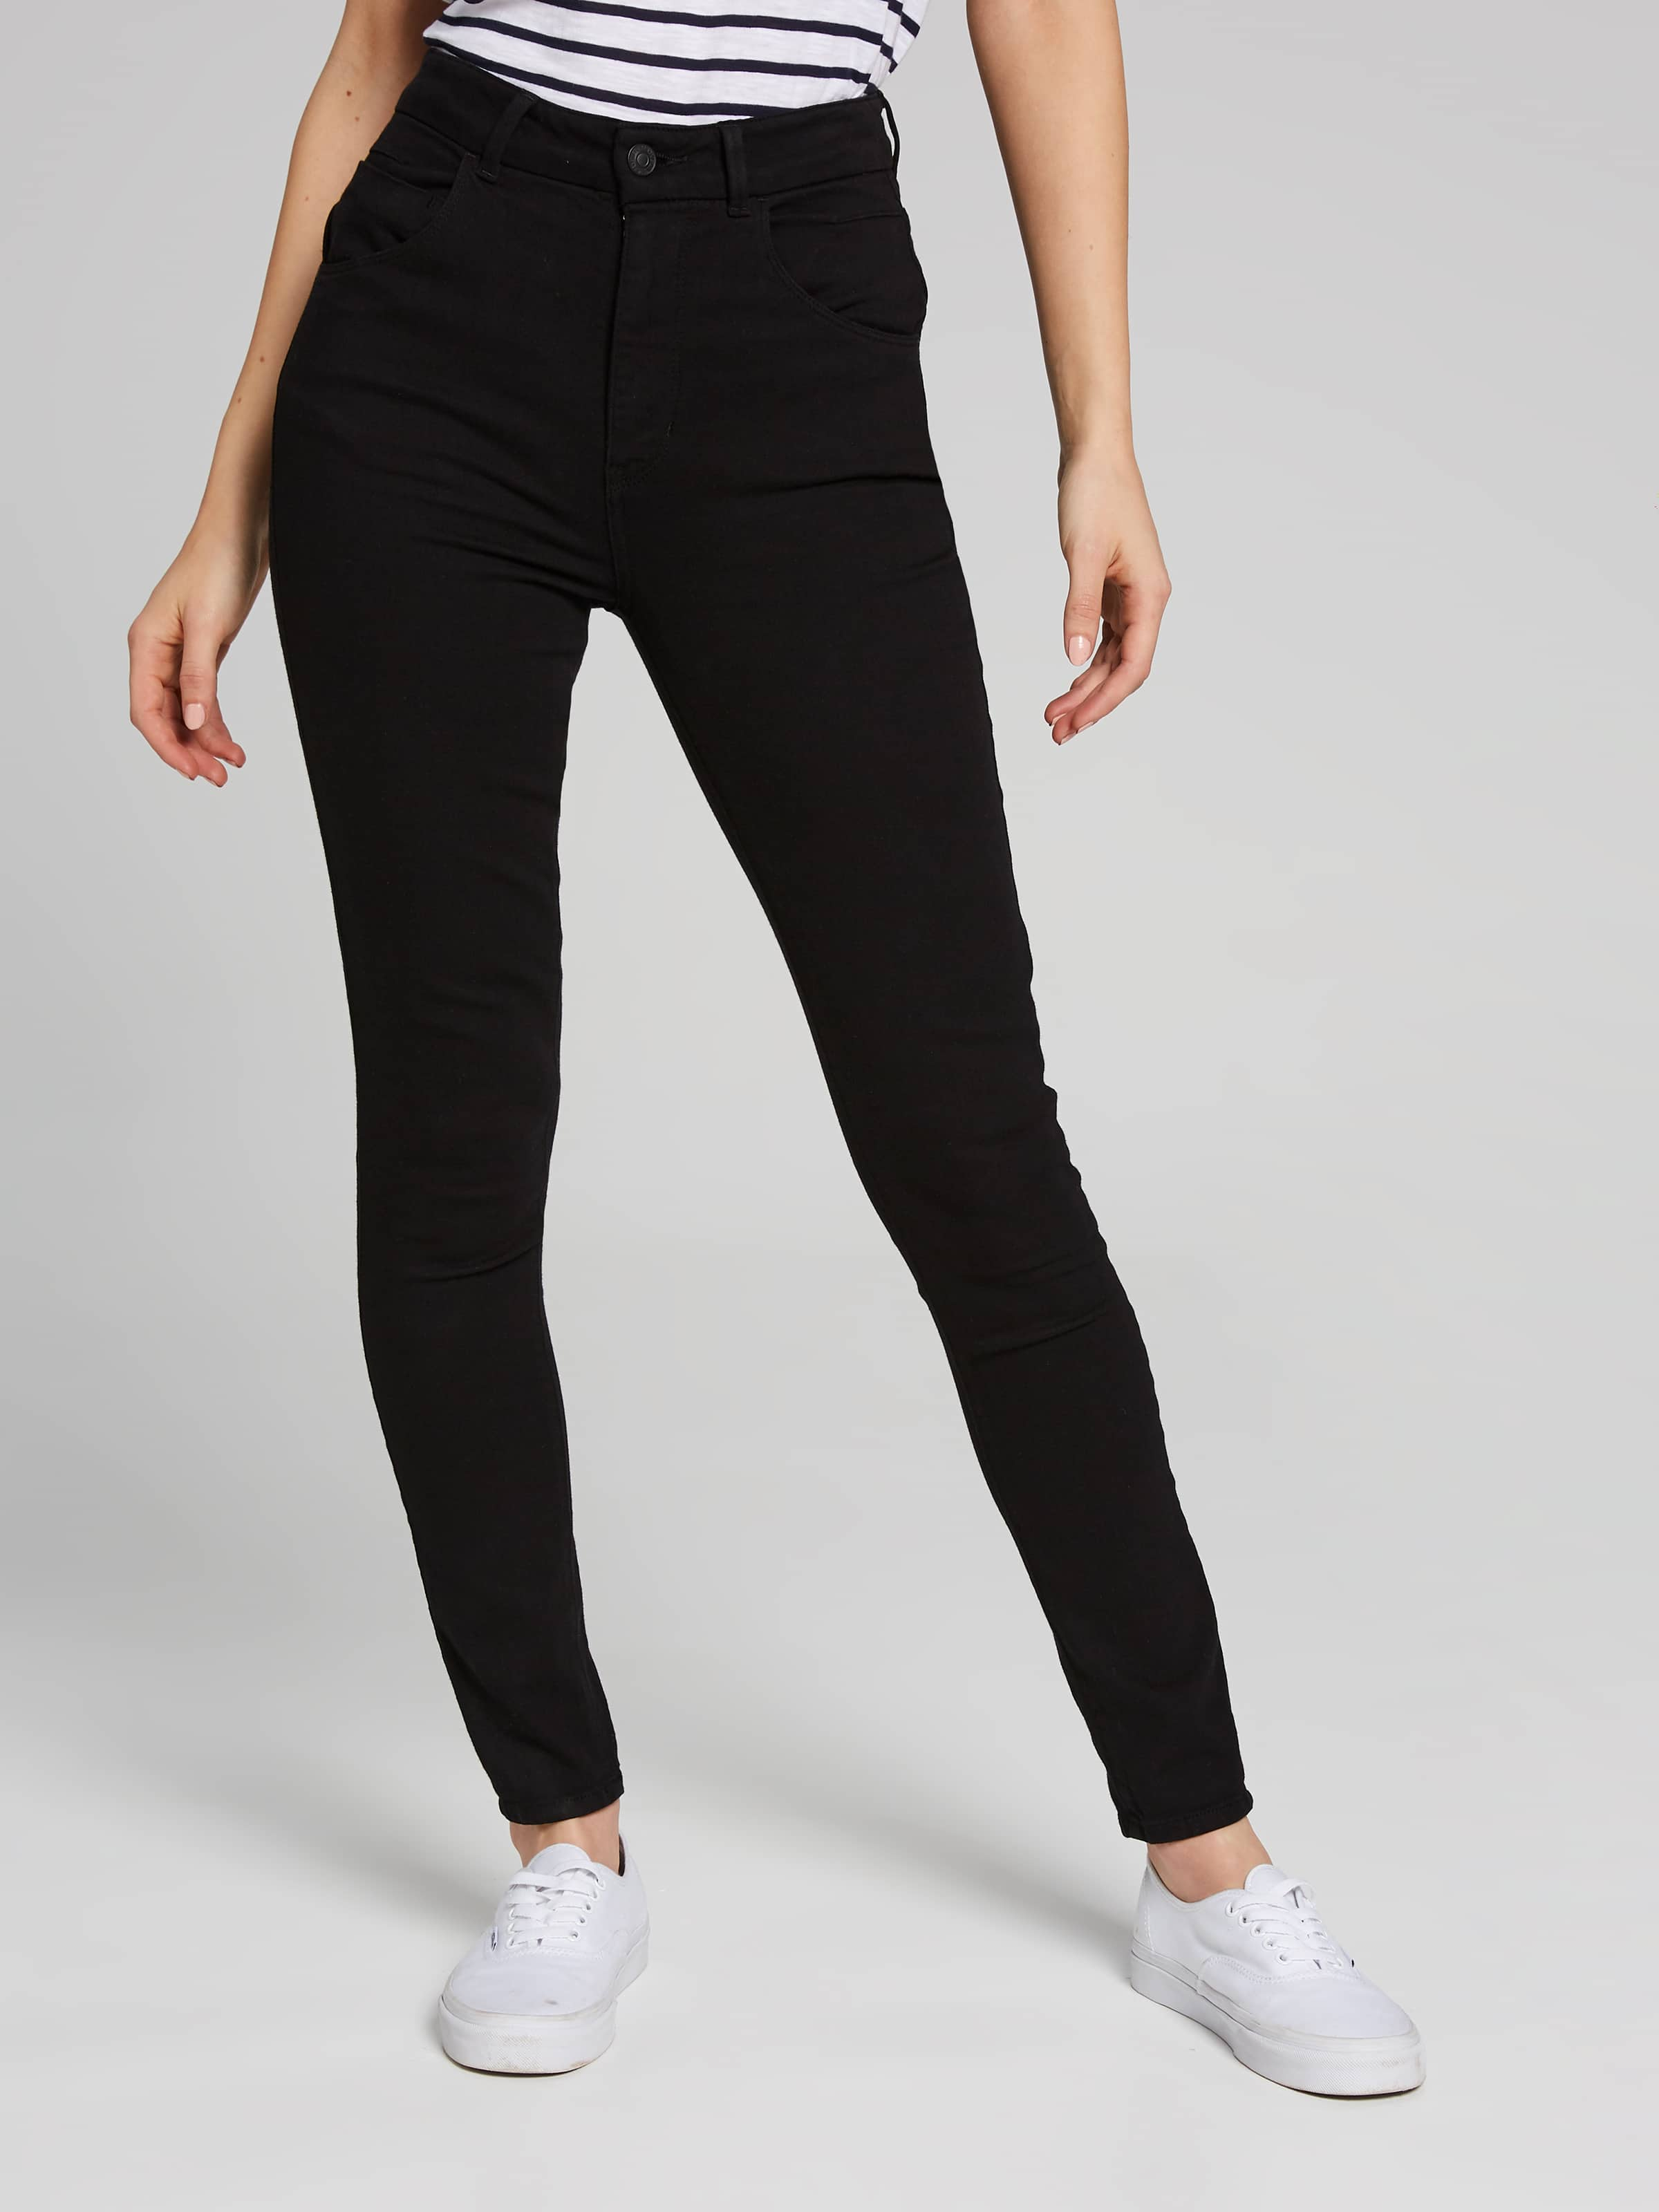 Image for Guess Super High Rise Jean In Black Overdye from Just Jeans ... 72050af84